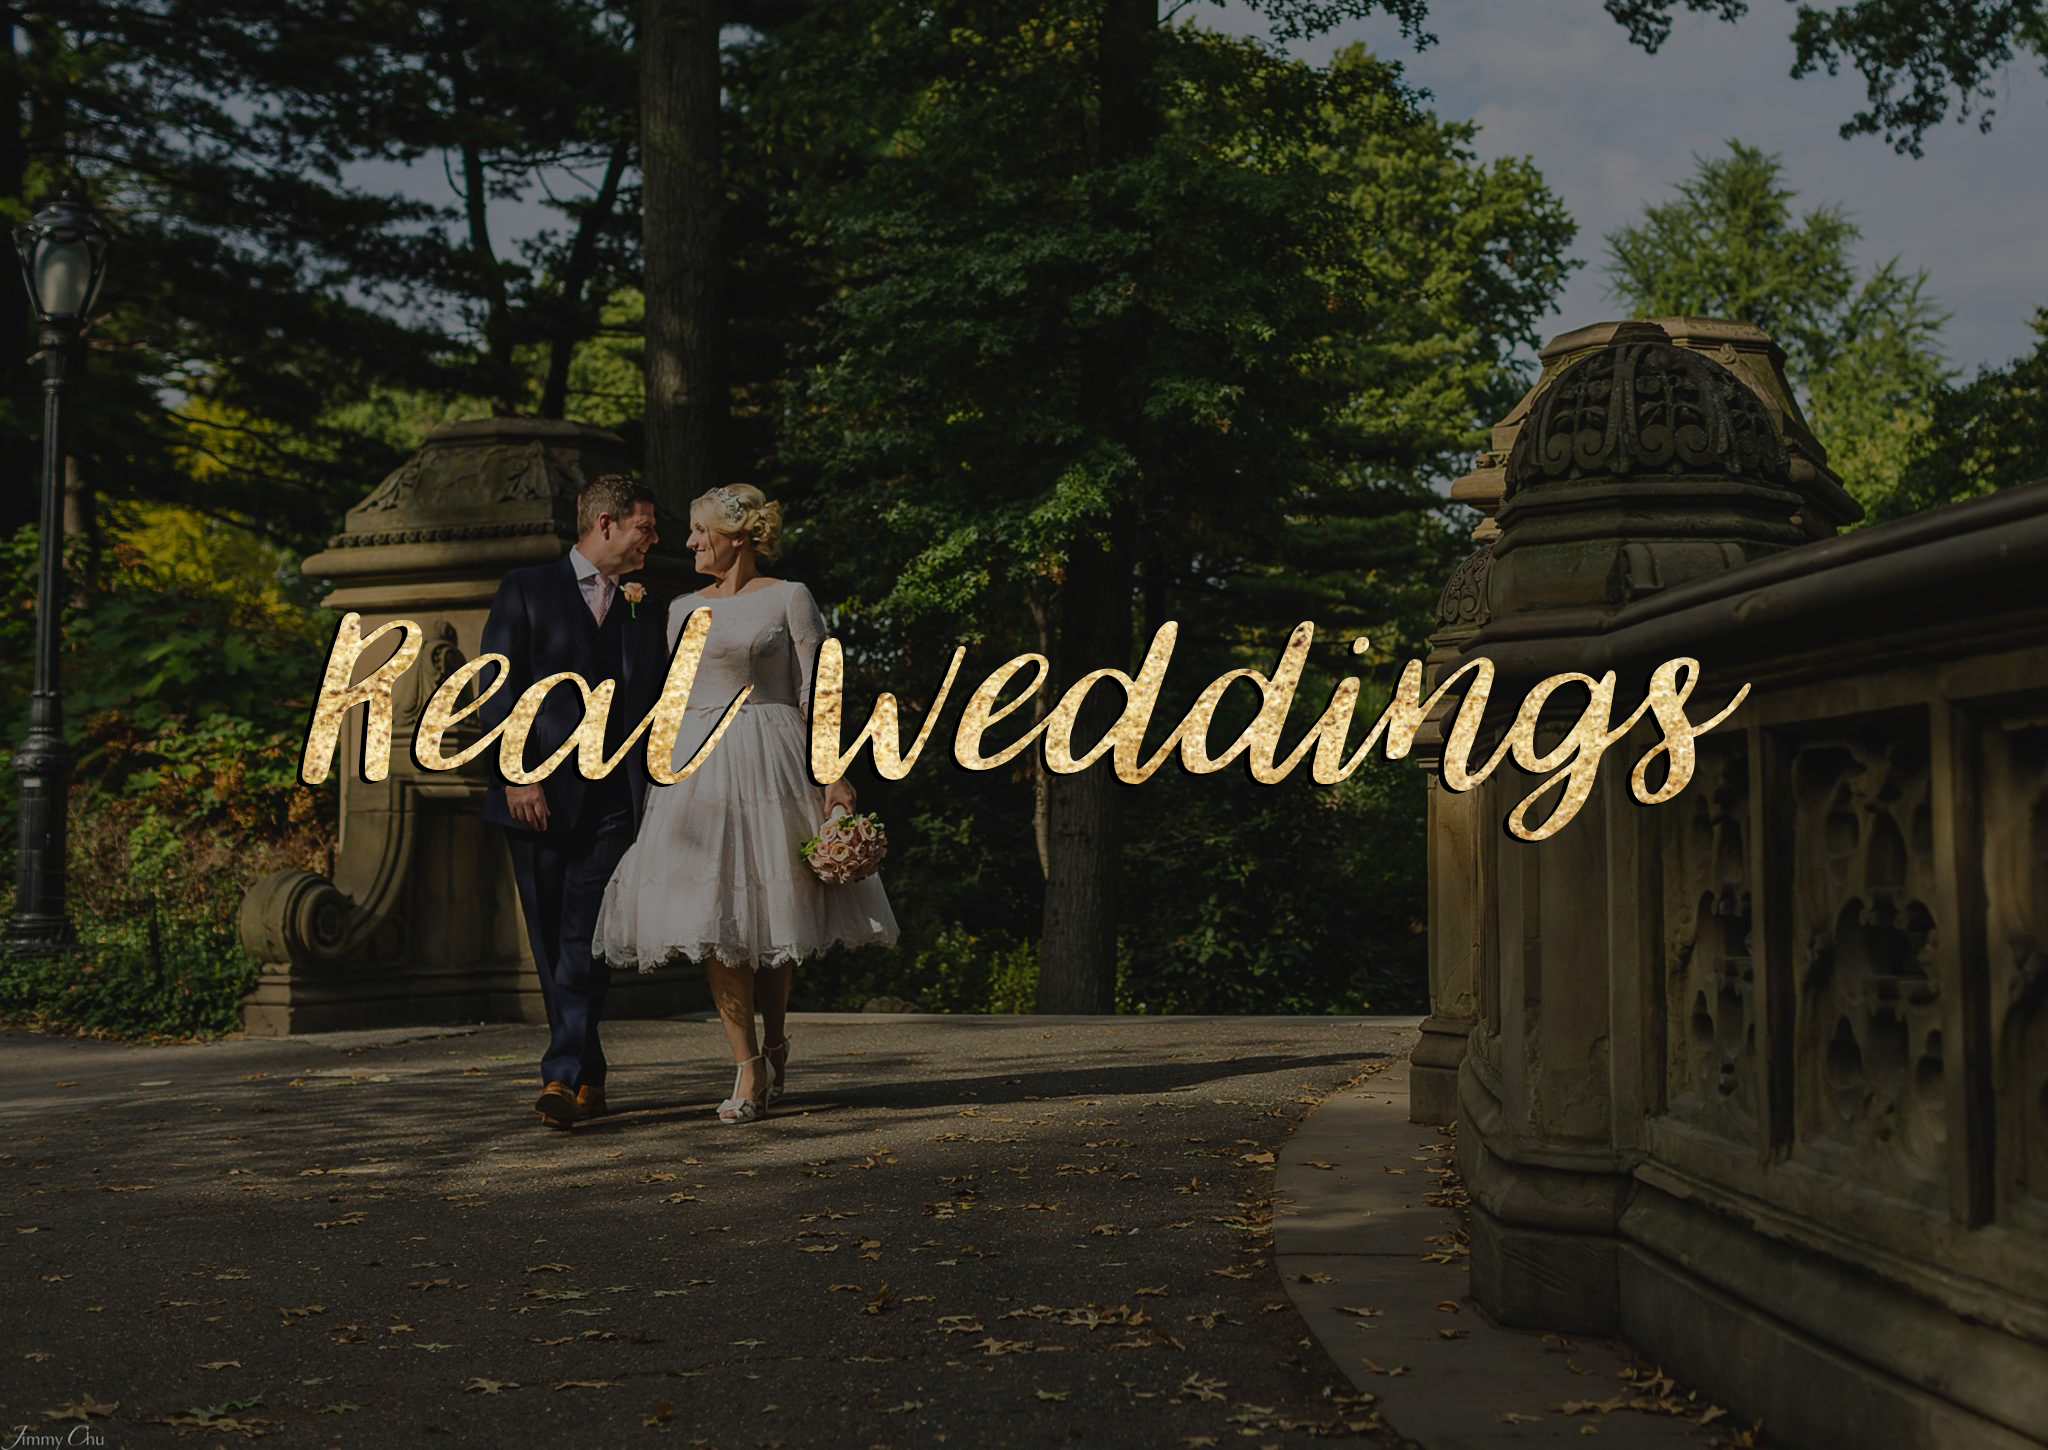 realweddingsgallerycover.png